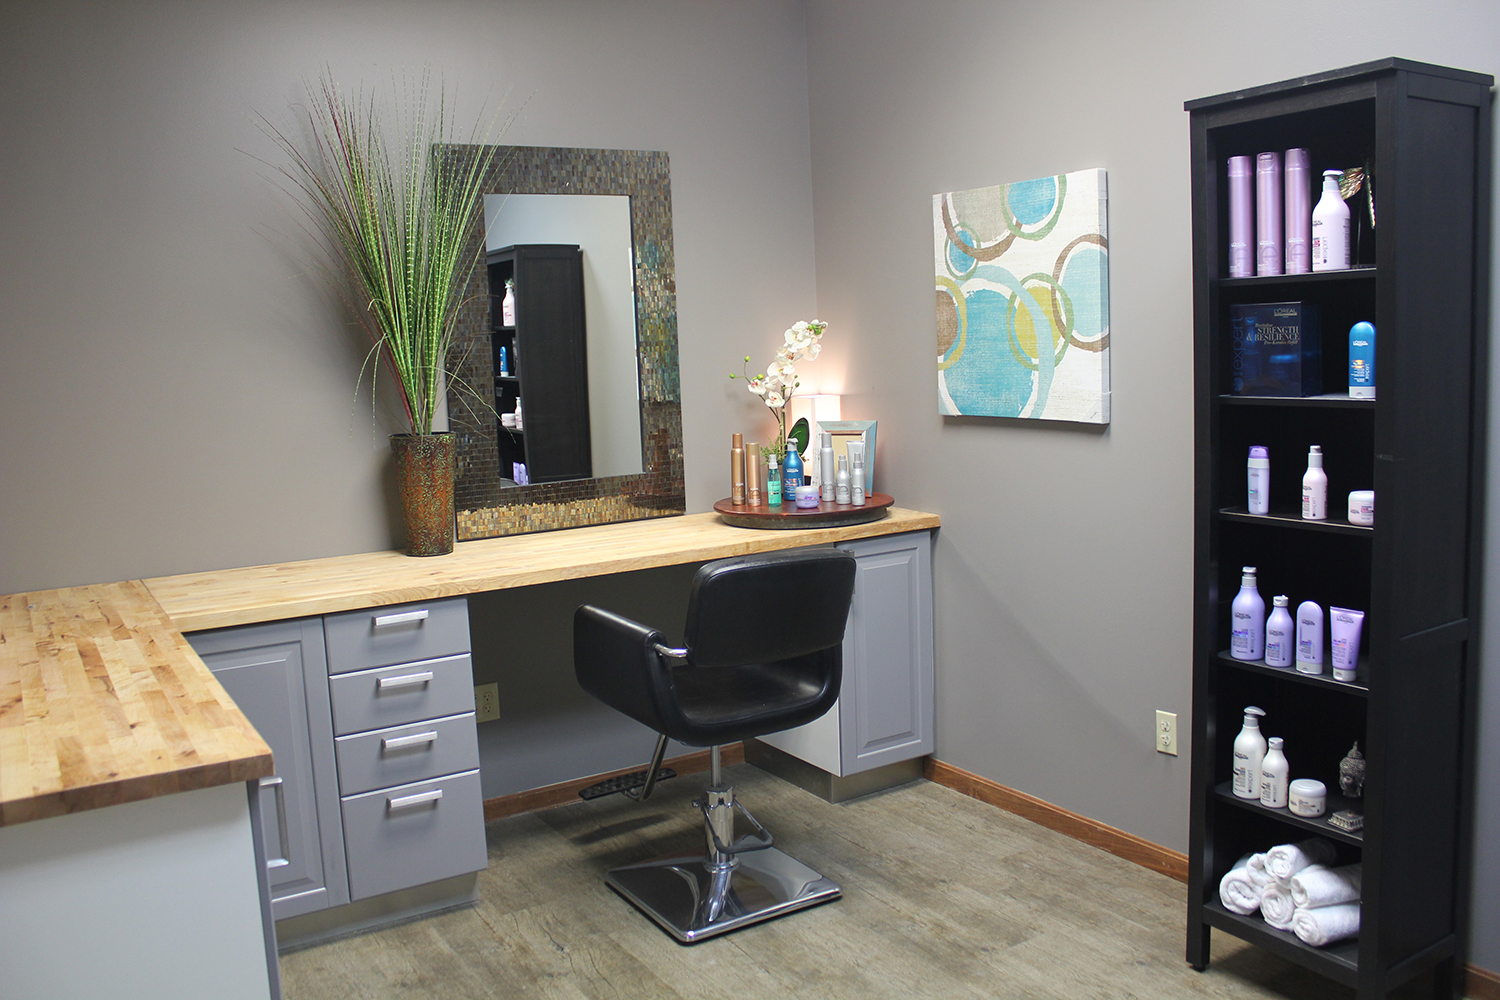 An inside look at a luxury suite at Endz Salon Studios, which was launched in March by the owners of Salon Rootz, an employee-based salon in Medina, Ohio.